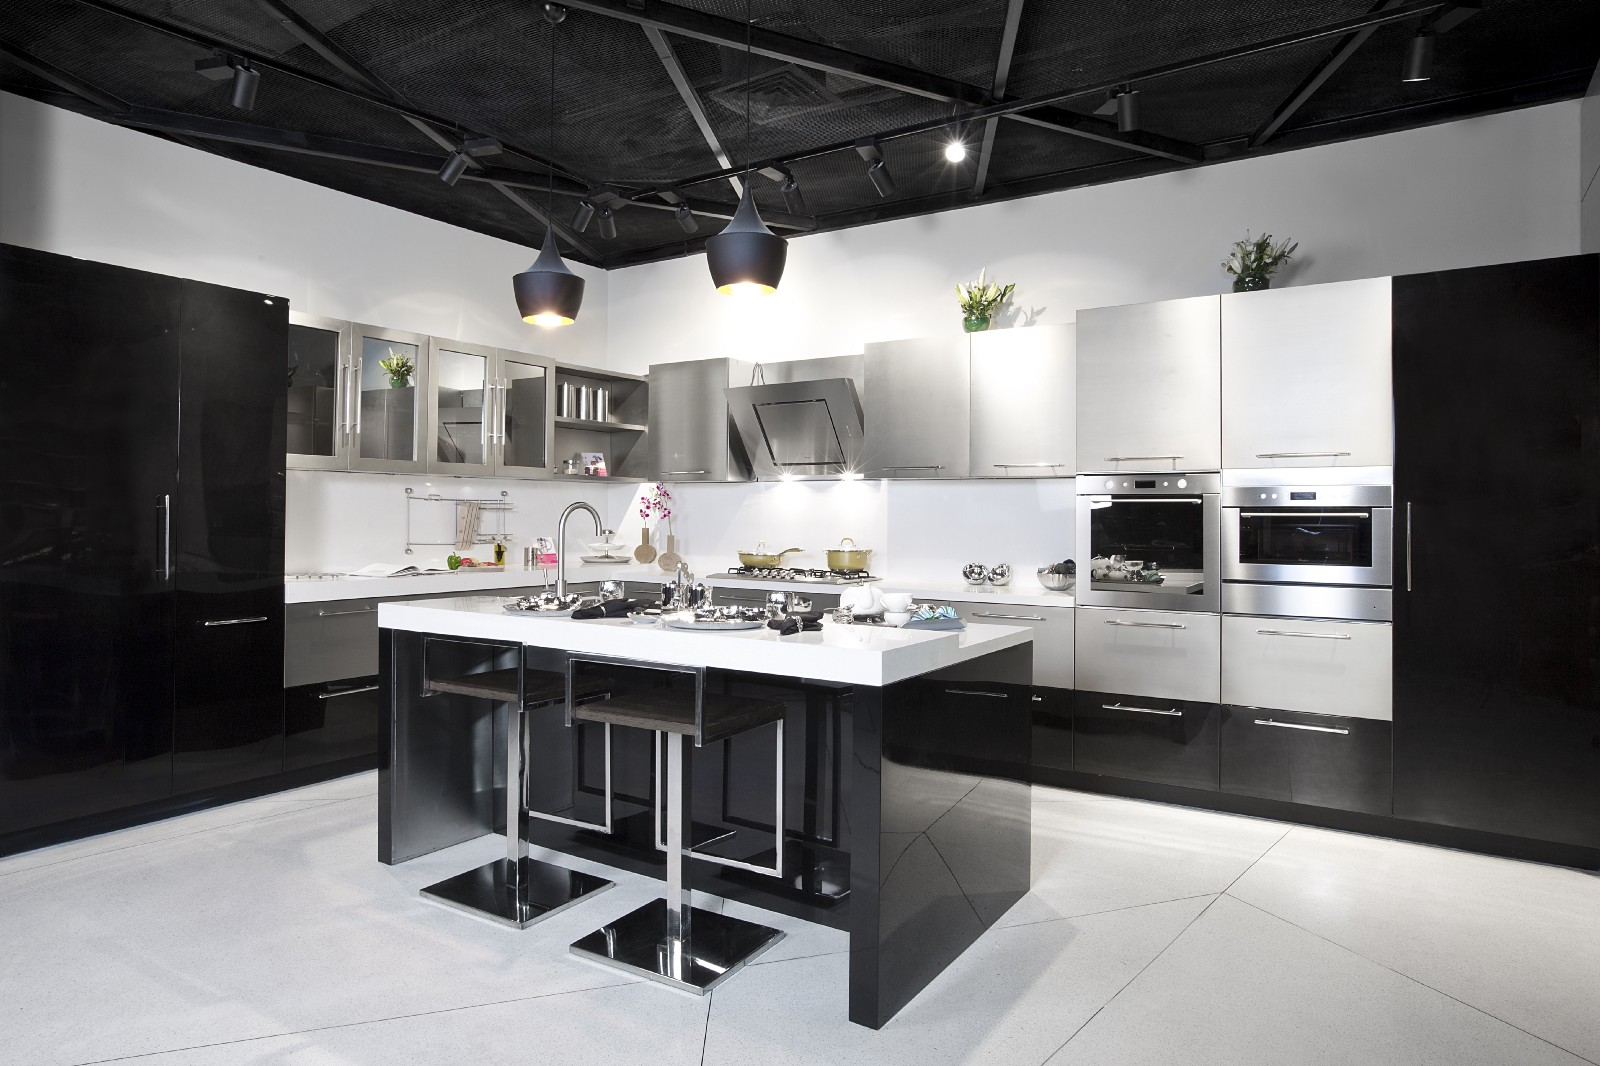 Top 6 reputed modular kitchen brands in india rajat for Steel modular kitchen designs